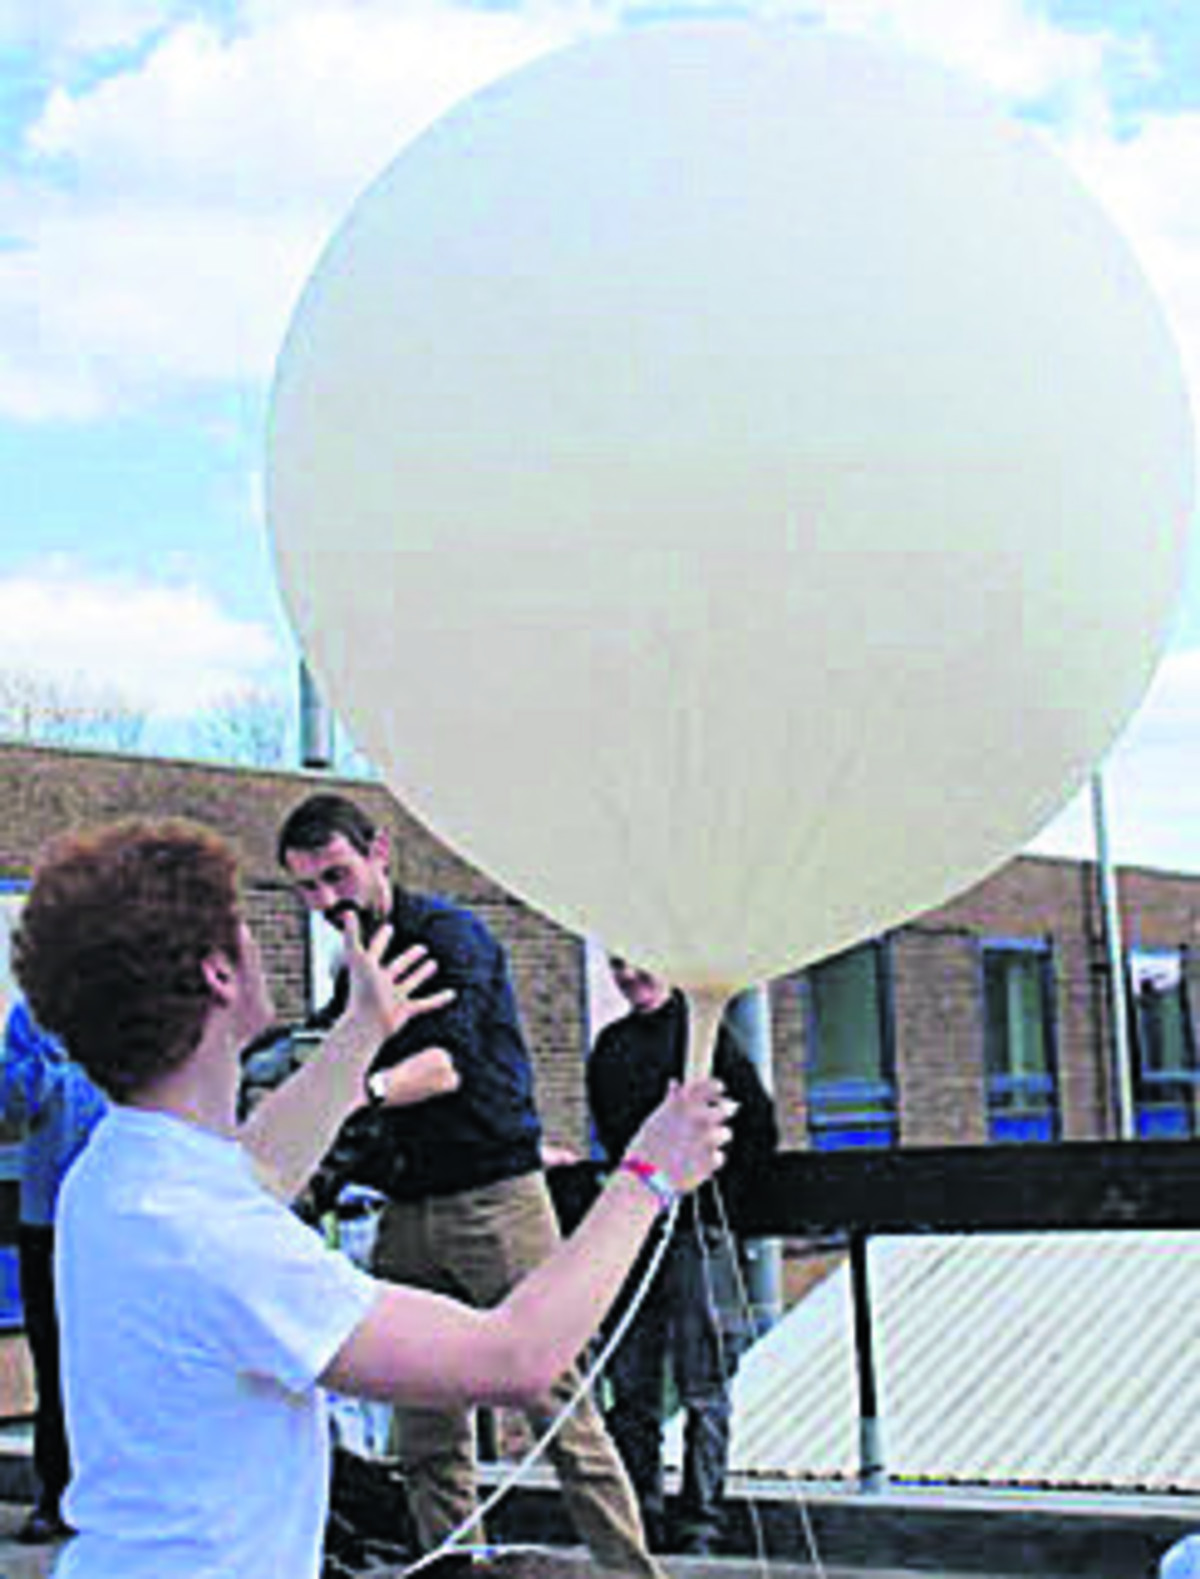 University of Nottingham's PhysSoc society launching the balloon on Friday